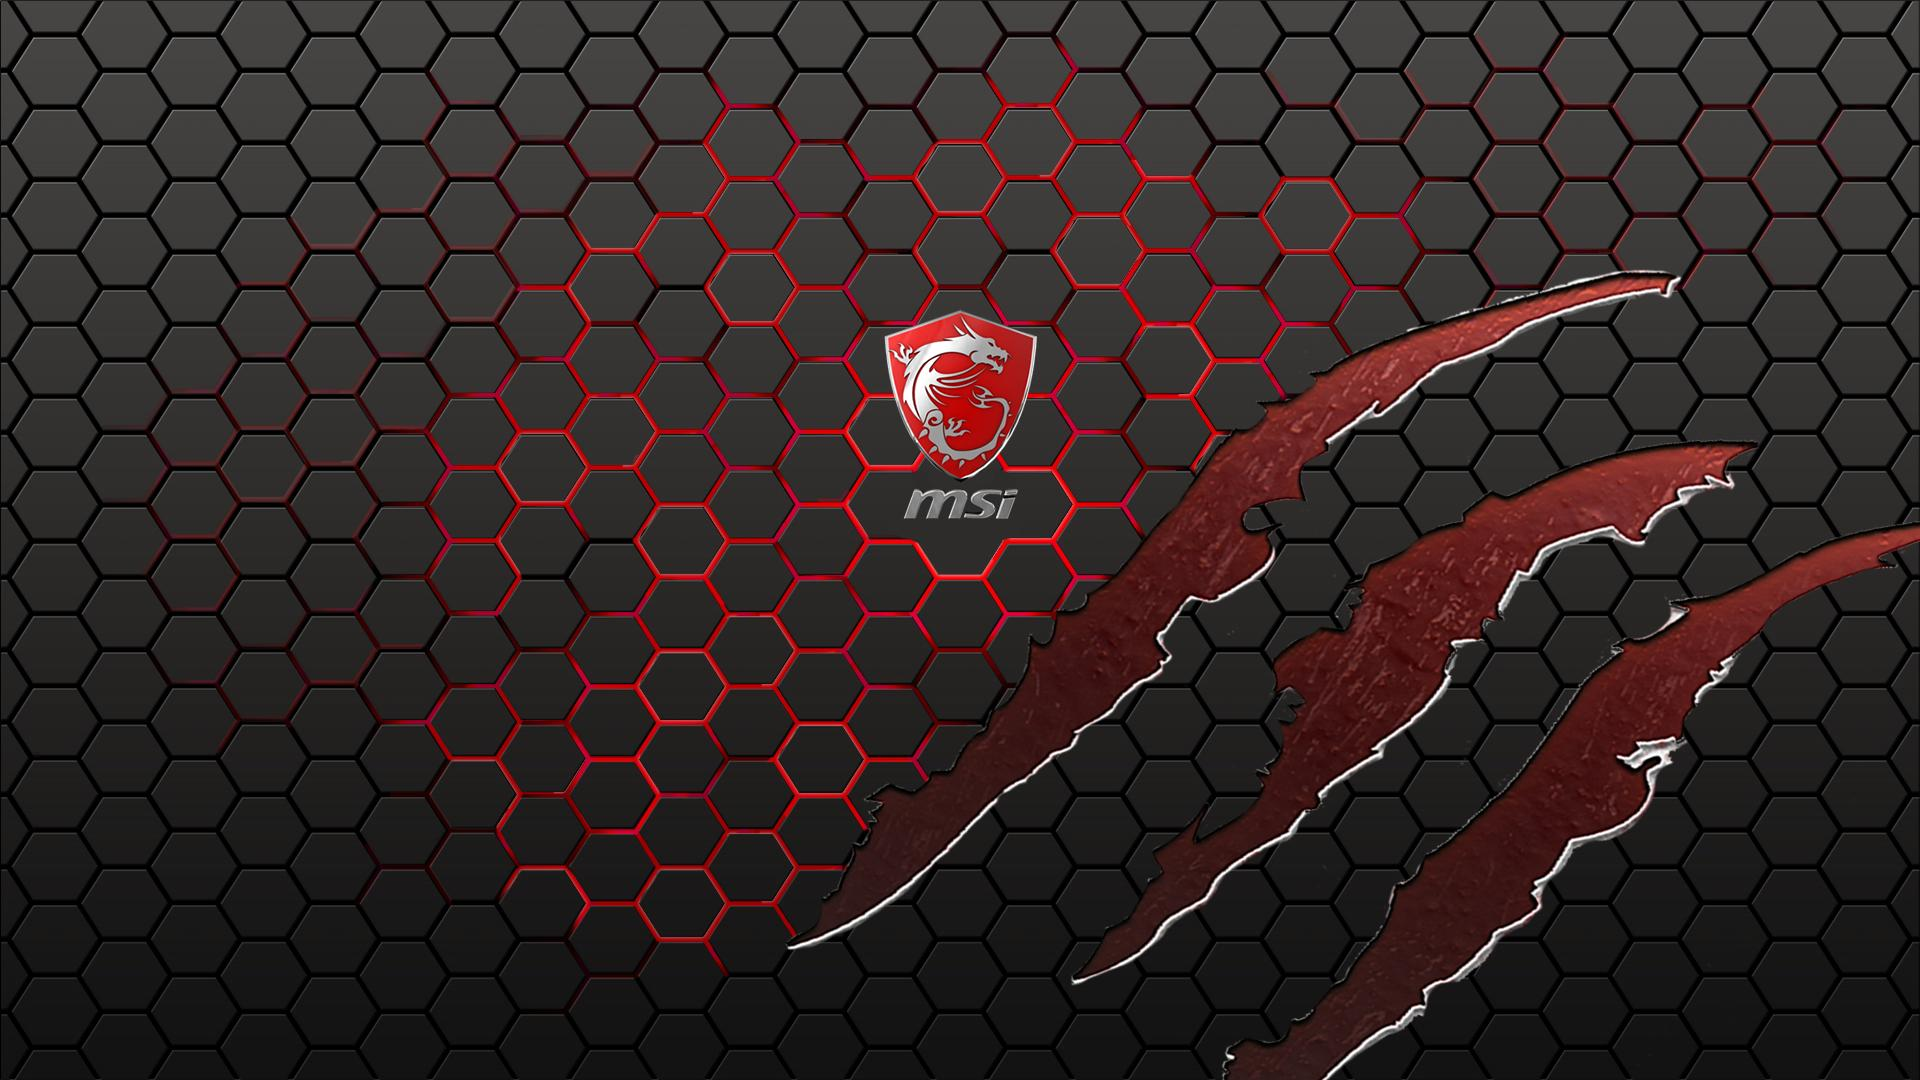 4k Wallpaper: 4K Wallpaper MSI